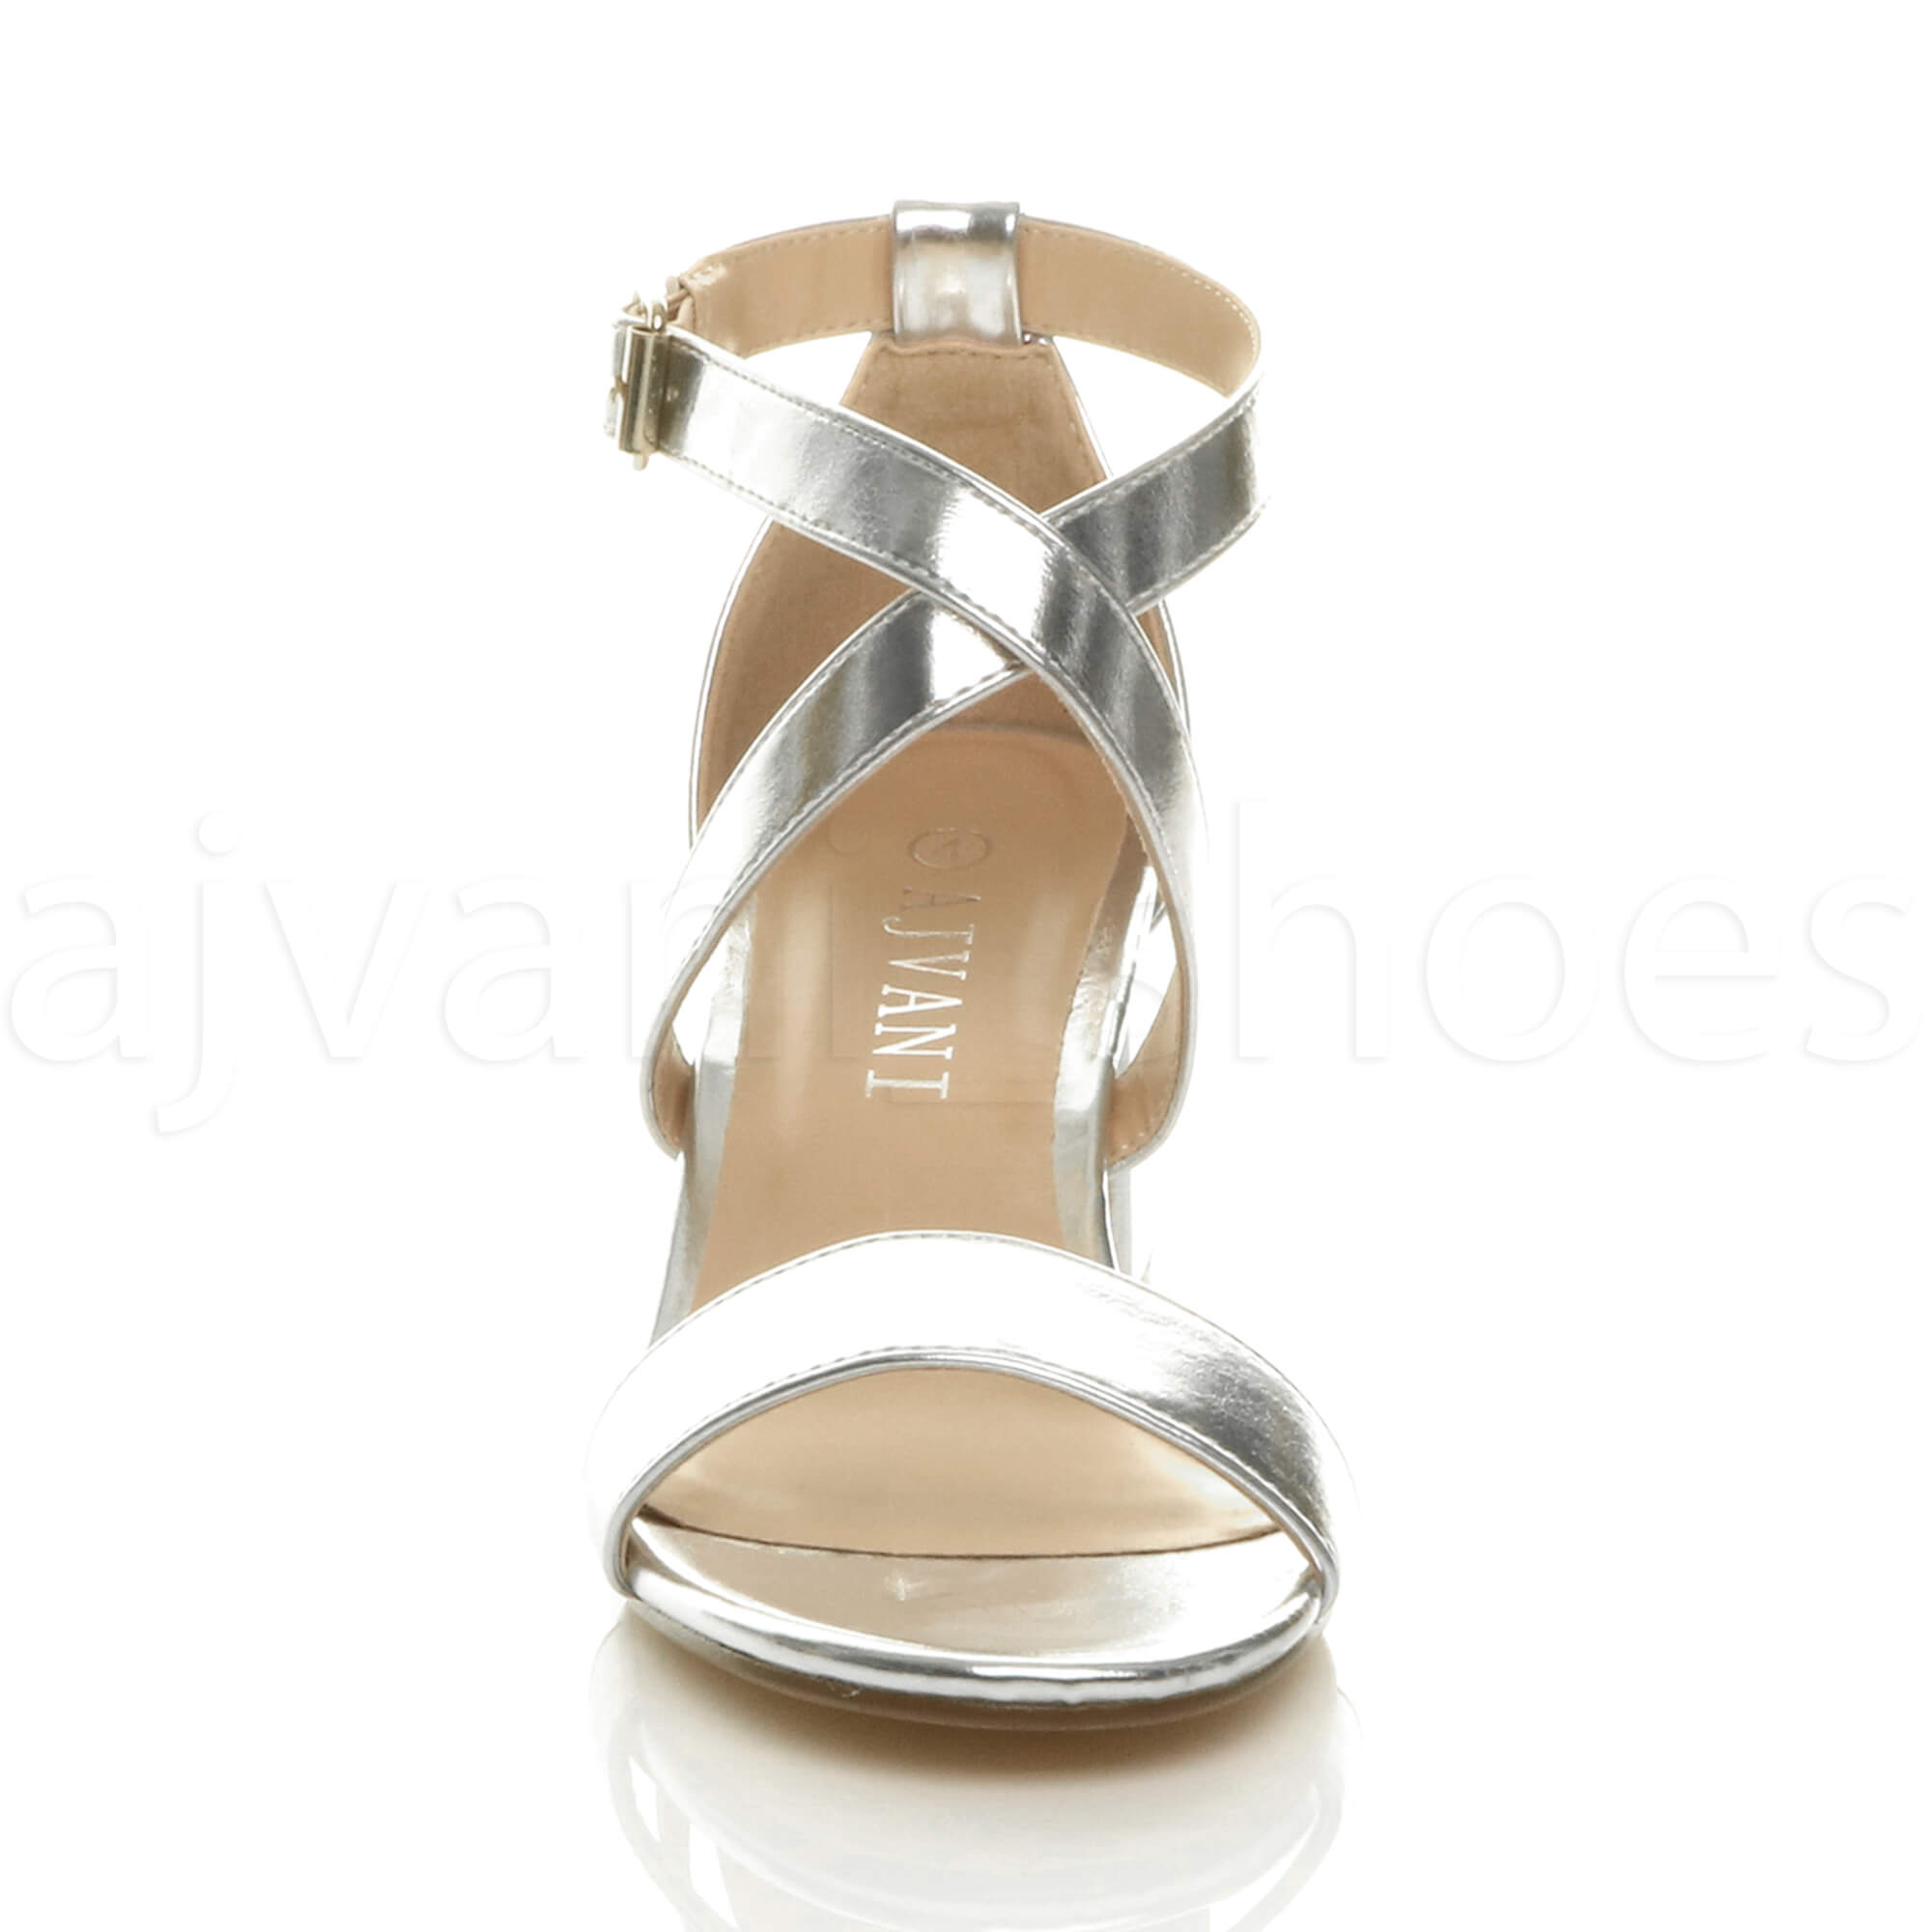 WOMENS-LADIES-MID-LOW-BLOCK-HEEL-CROSS-STRAPS-PARTY-STRAPPY-SANDALS-SHOES-SIZE thumbnail 83